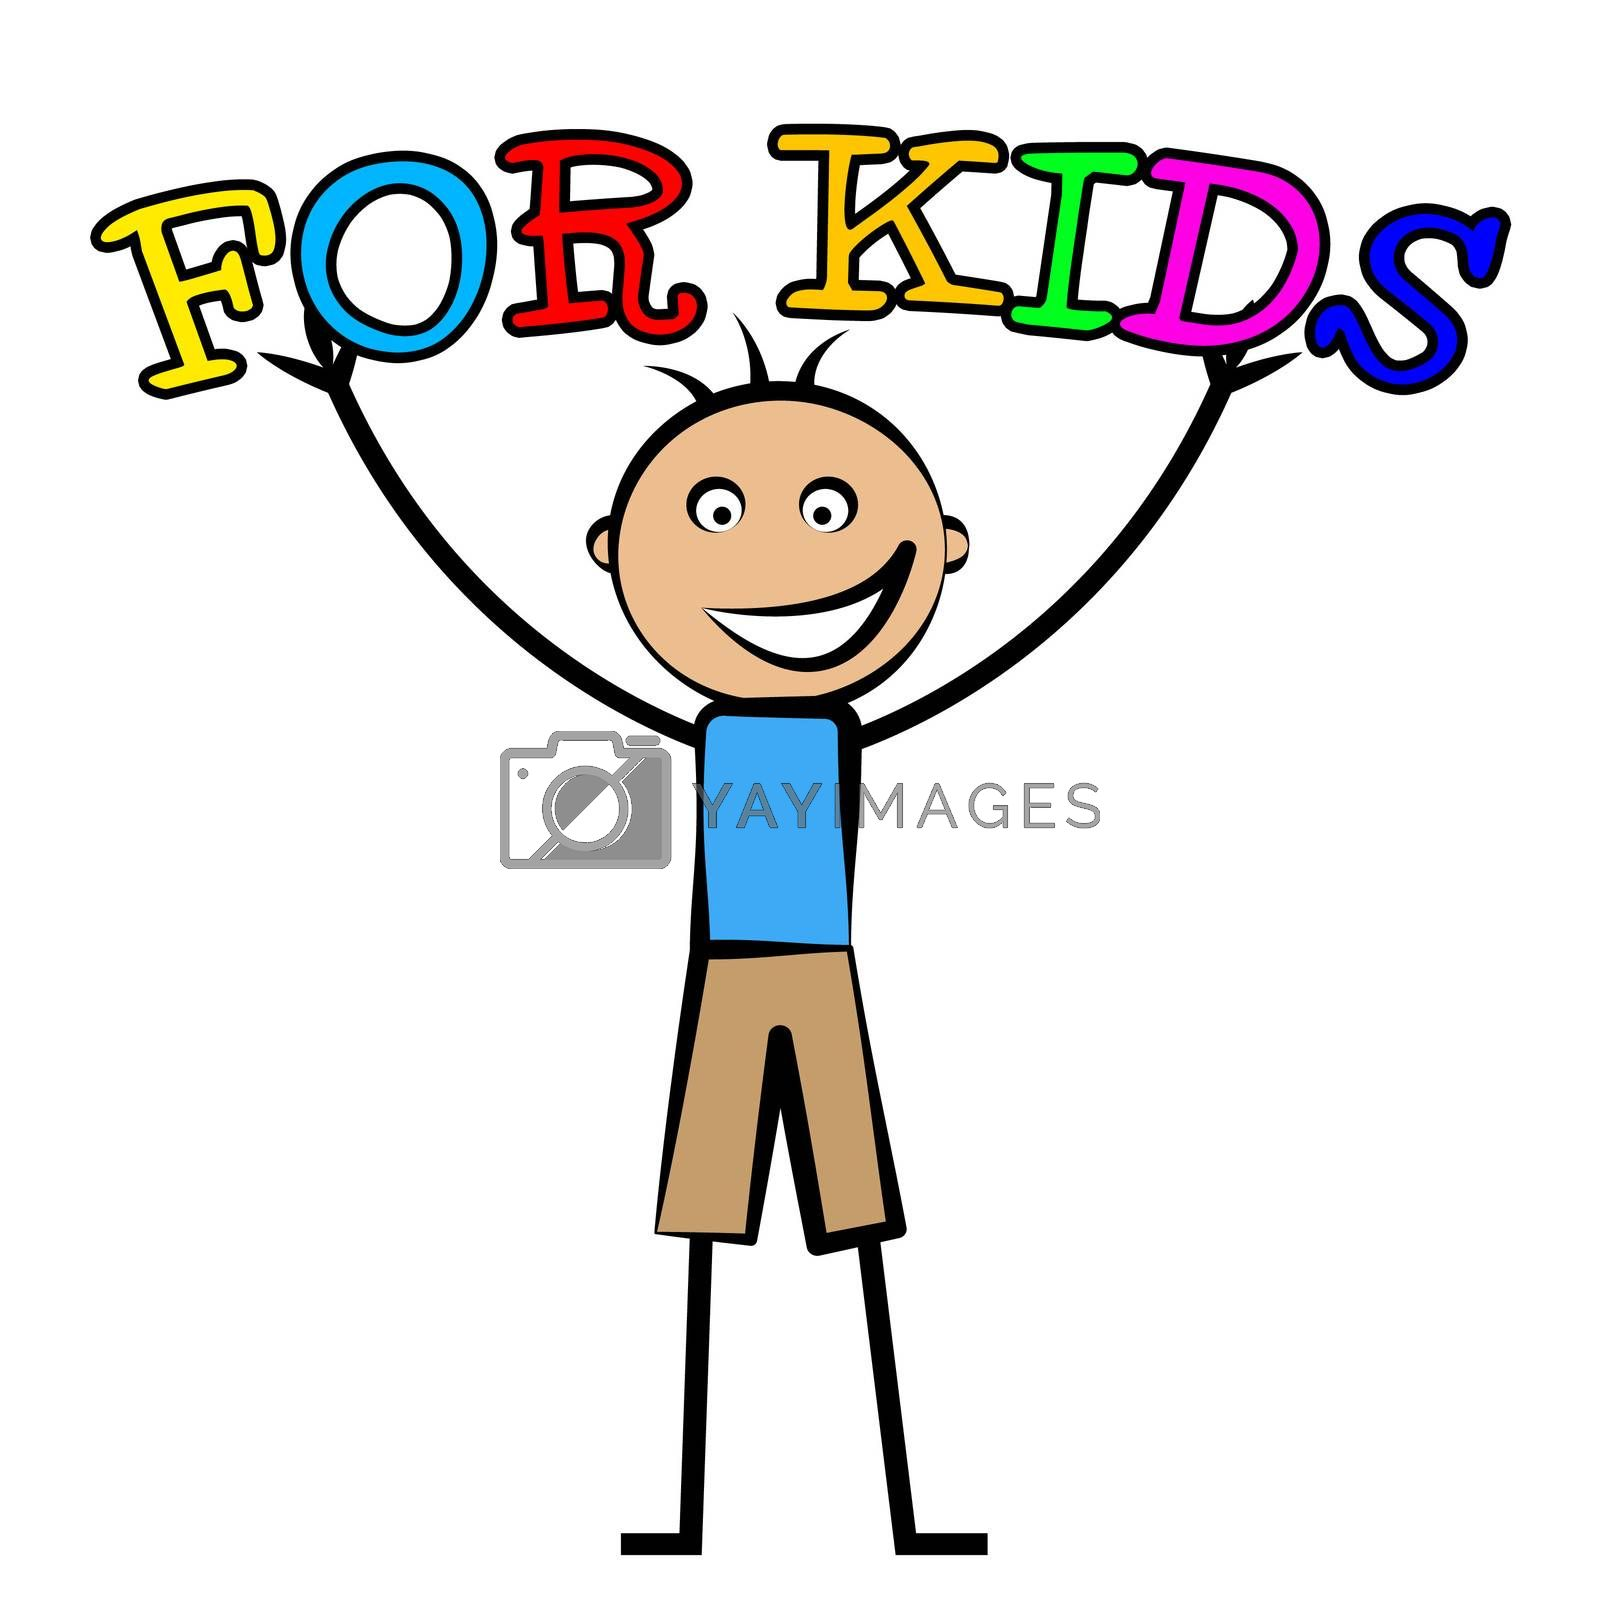 For Kids Indicates Toddlers Children And Child by stuartmiles